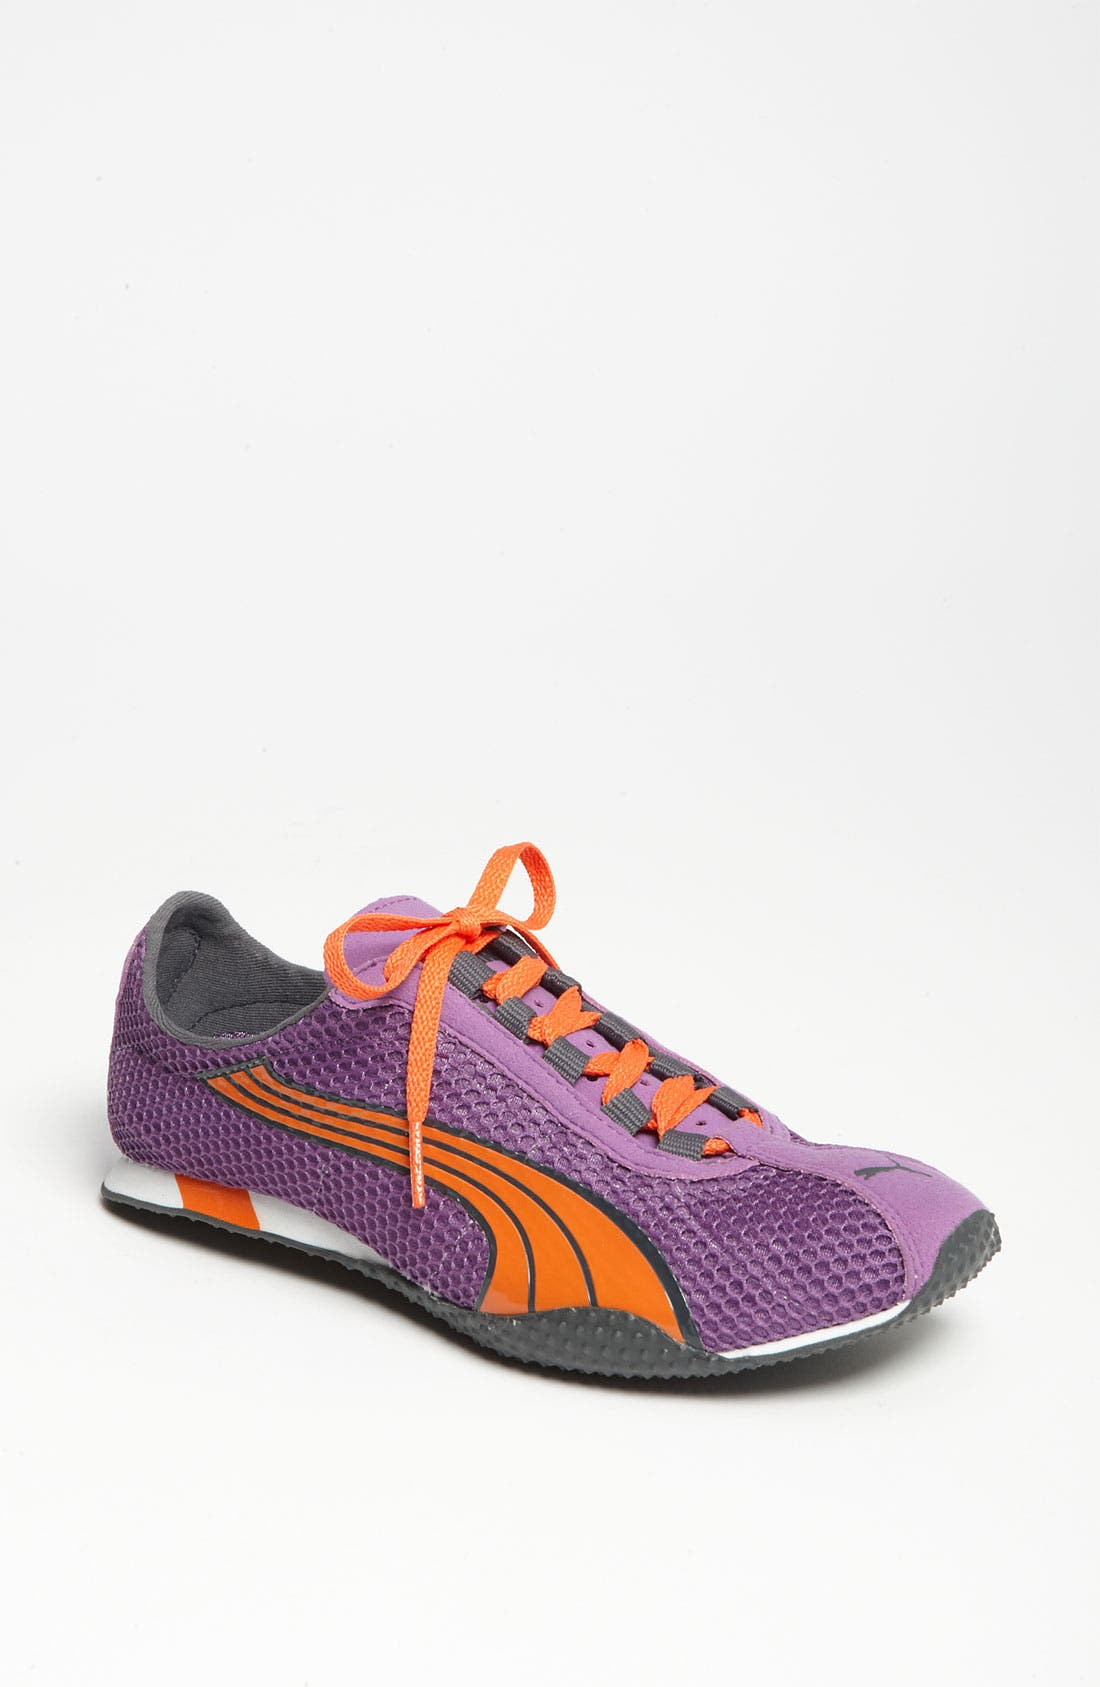 Alternate Image 1 Selected - PUMA 'H Street' Sneaker (Women)